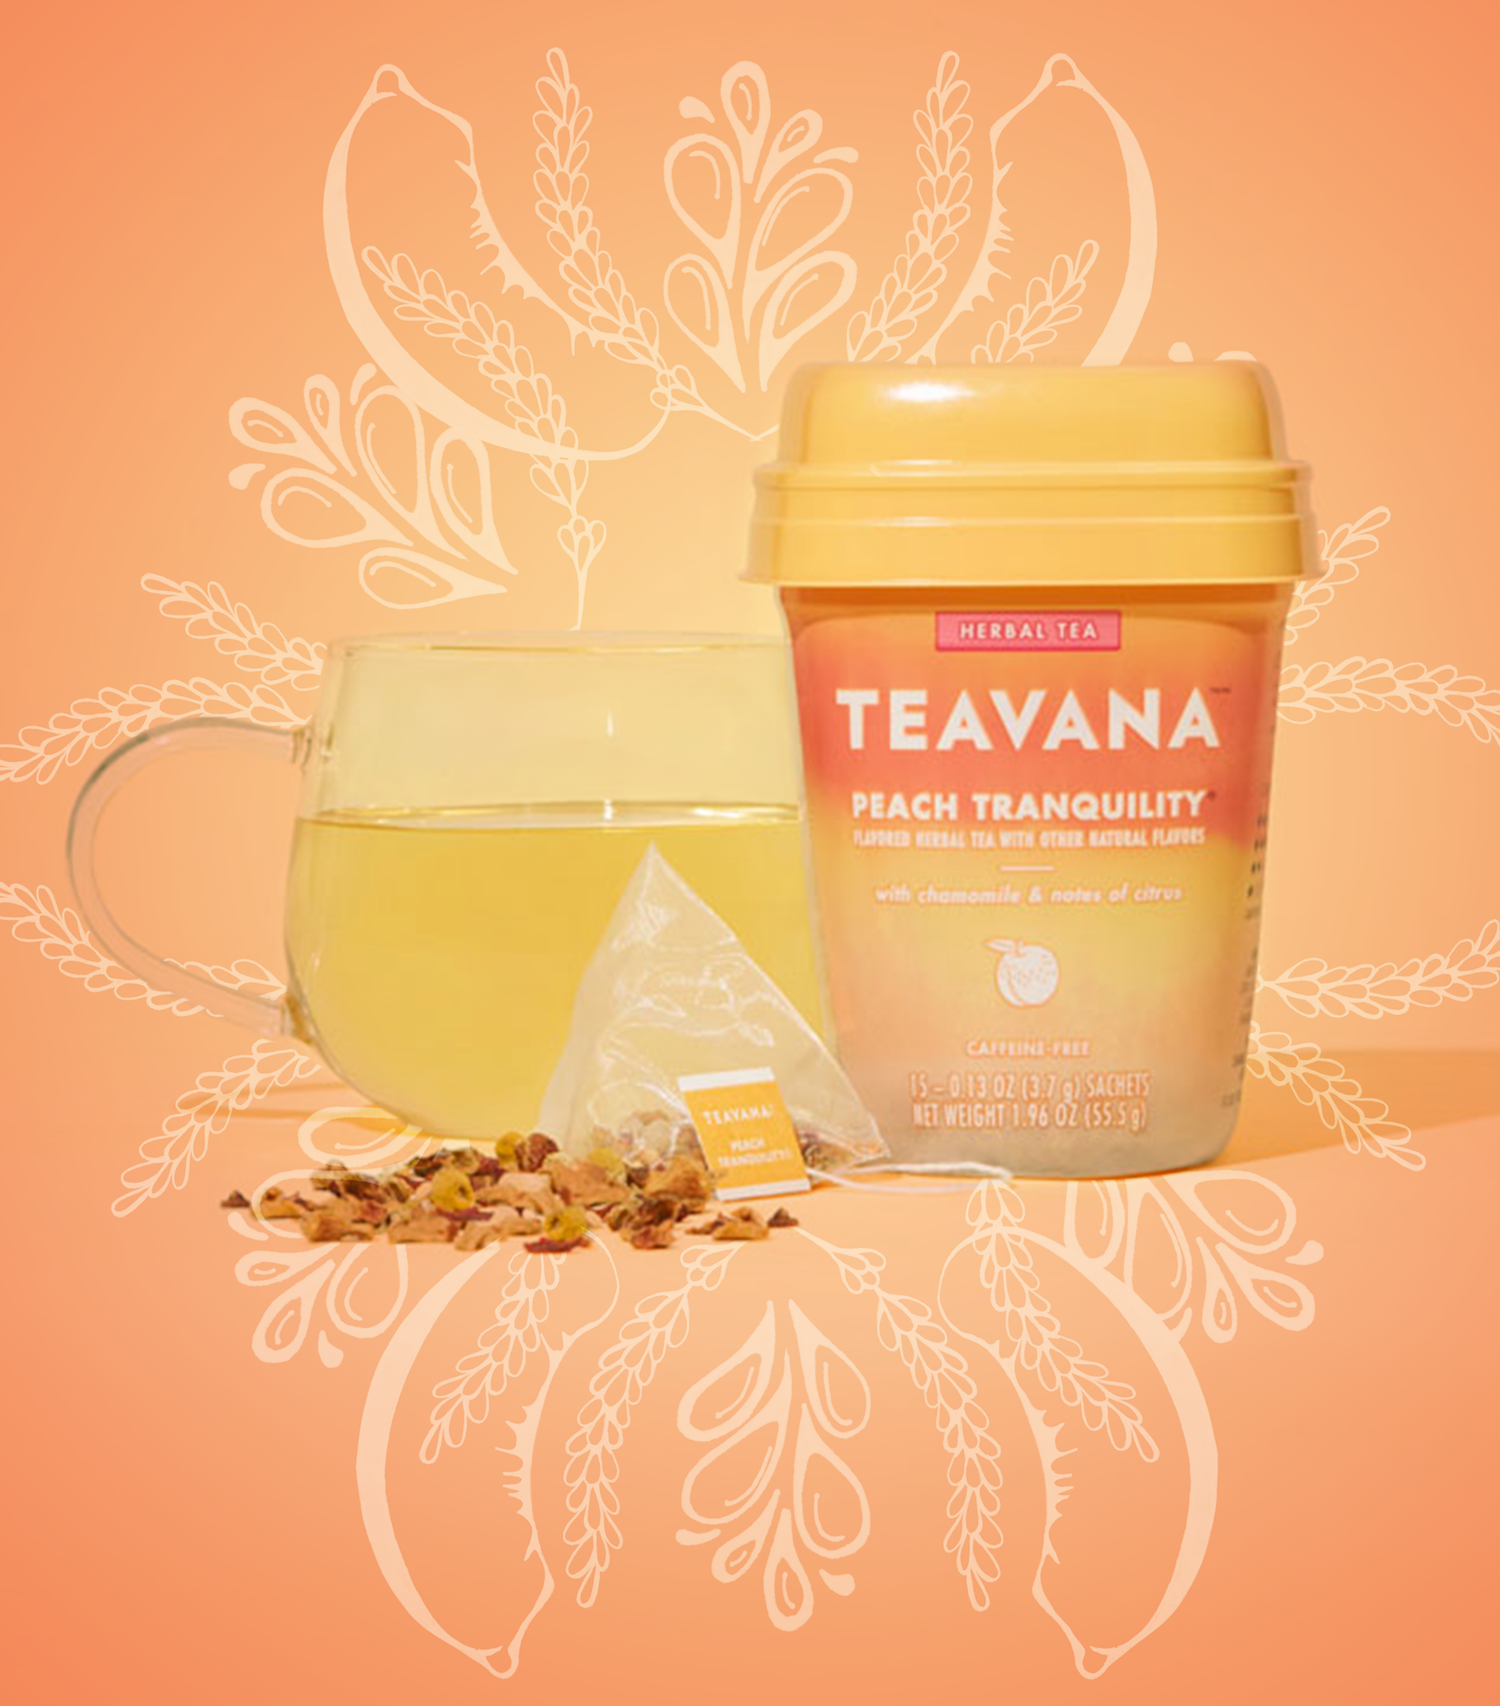 "<p><strong>Teavana</strong></p><p>amazon.com</p><p><strong>$21.88</strong></p><p><a href=""http://www.amazon.com/dp/B07GFNQ1NK/?tag=syn-yahoo-20&ascsubtag=%5Bartid%7C1782.g.2573%5Bsrc%7Cyahoo-us"" rel=""nofollow noopener"" target=""_blank"" data-ylk=""slk:BUY NOW"" class=""link rapid-noclick-resp"">BUY NOW</a></p><p>Bring some peace and quiet to her life with this delicious Teavana tea. Bonus: If you're too late to order online, you can find Teavana tea sachets at your local grocery store.</p>"